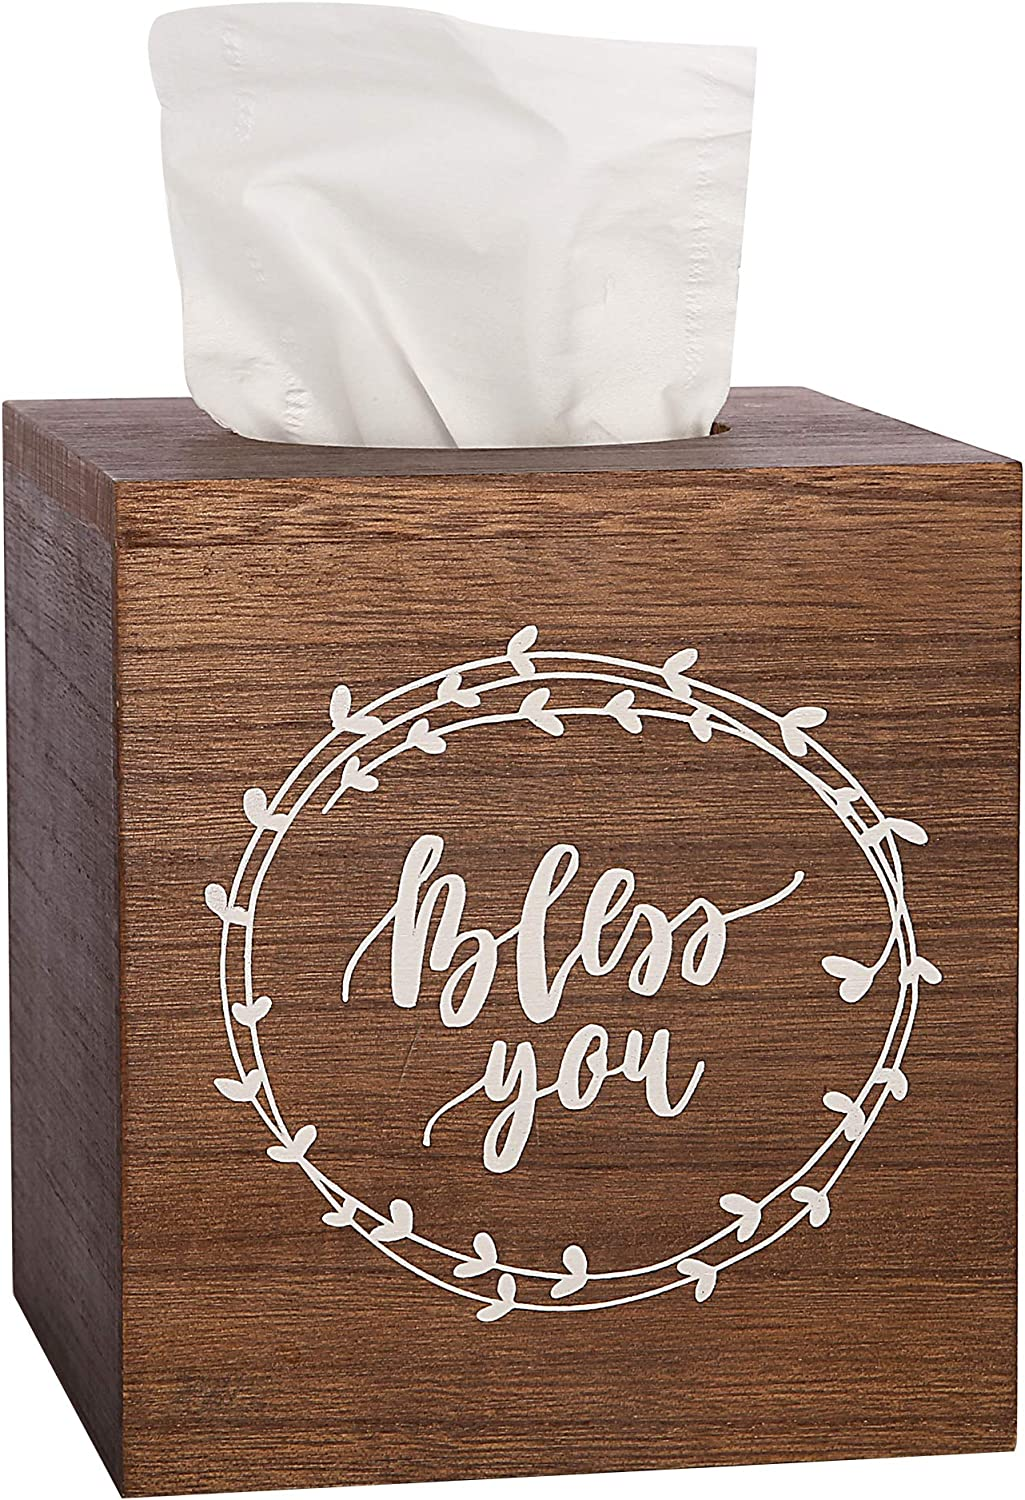 Bless You Tissue Box Cover - Boho Farmhouse Decor for The Home - Wood Tissue Box Holder - Perfect for Modern Rustic Home Decor